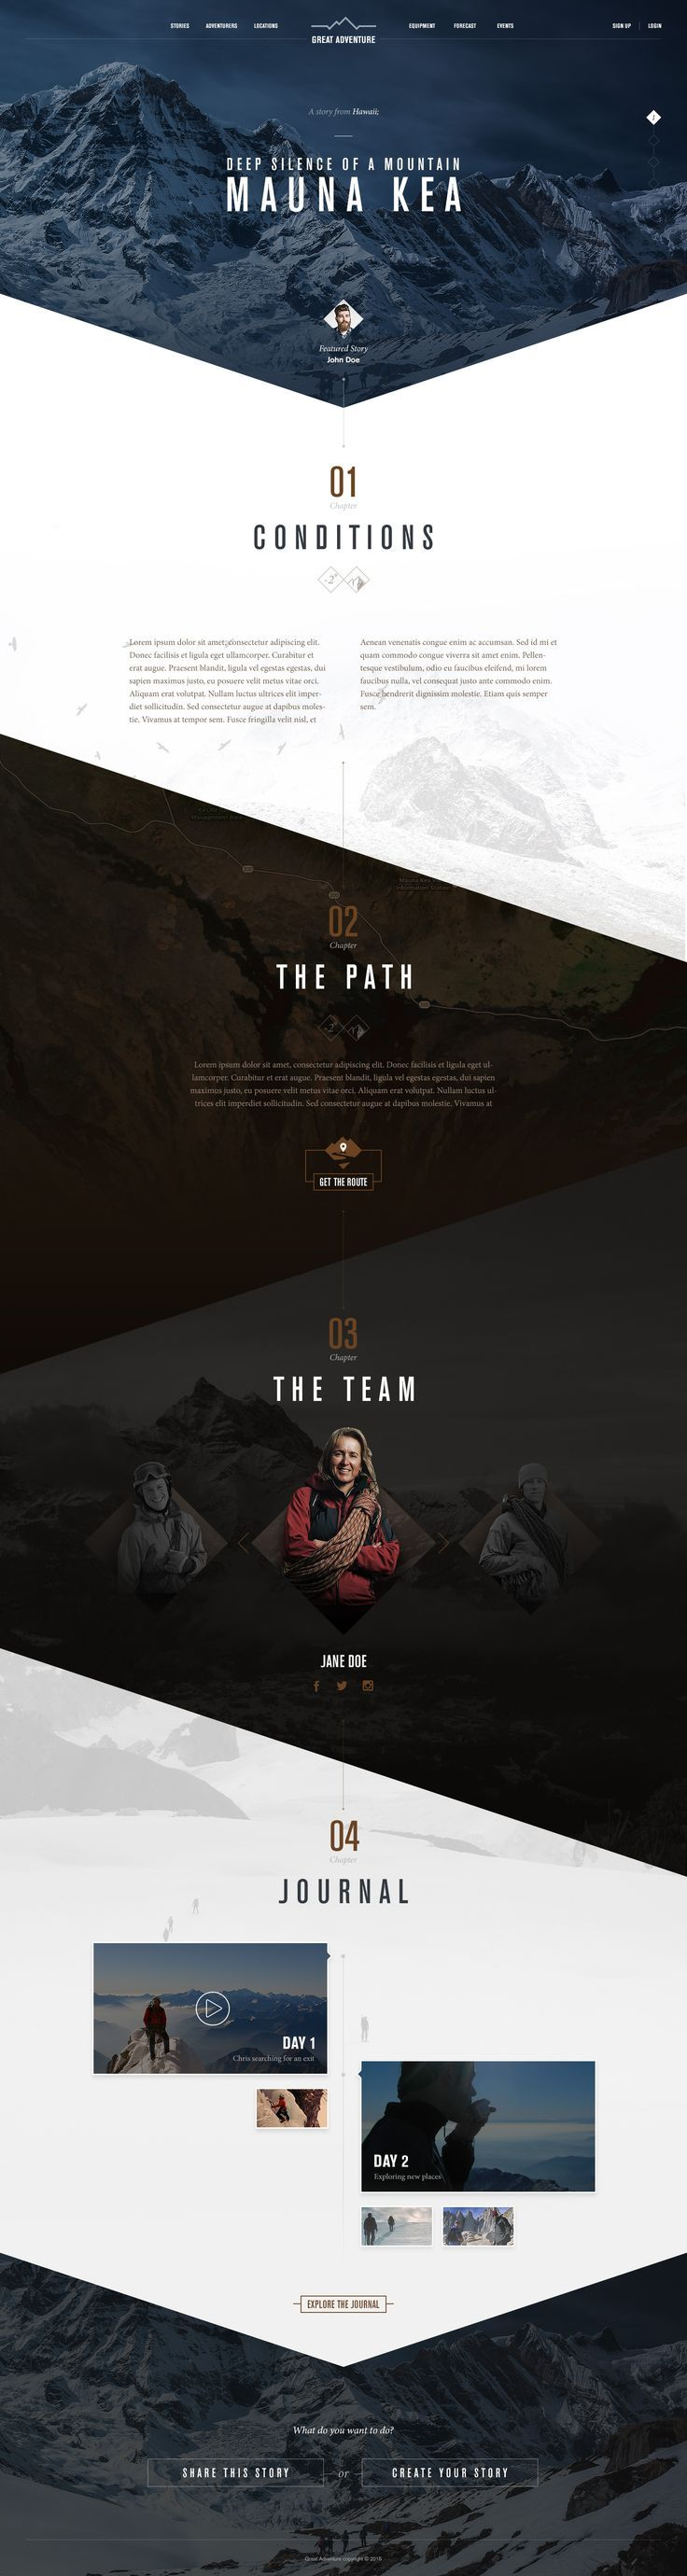 Great Adventure by Tansel Turunz| Weekly web design Inspiration for everyone! Introducing Moire Studios a thriving website and graphic design studio. Feel Free to Follow us @MOIRE to see more remarkable pins like this. Or visit our website www.moirestudio